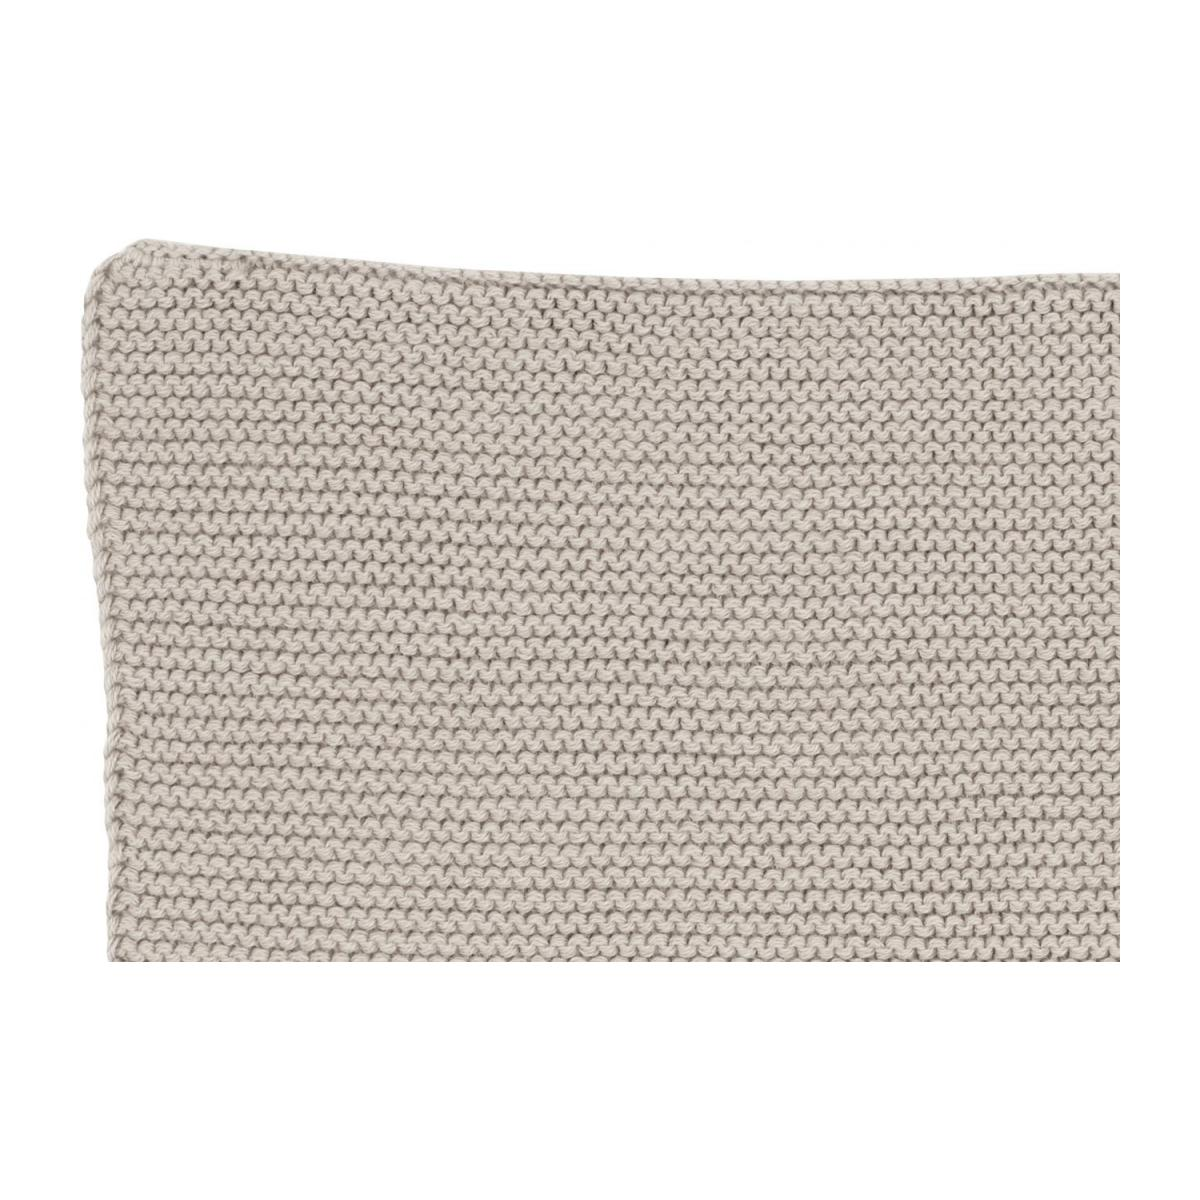 Lot de 2 serviettes de table en coton - 25 x 25 cm - Beige n°5